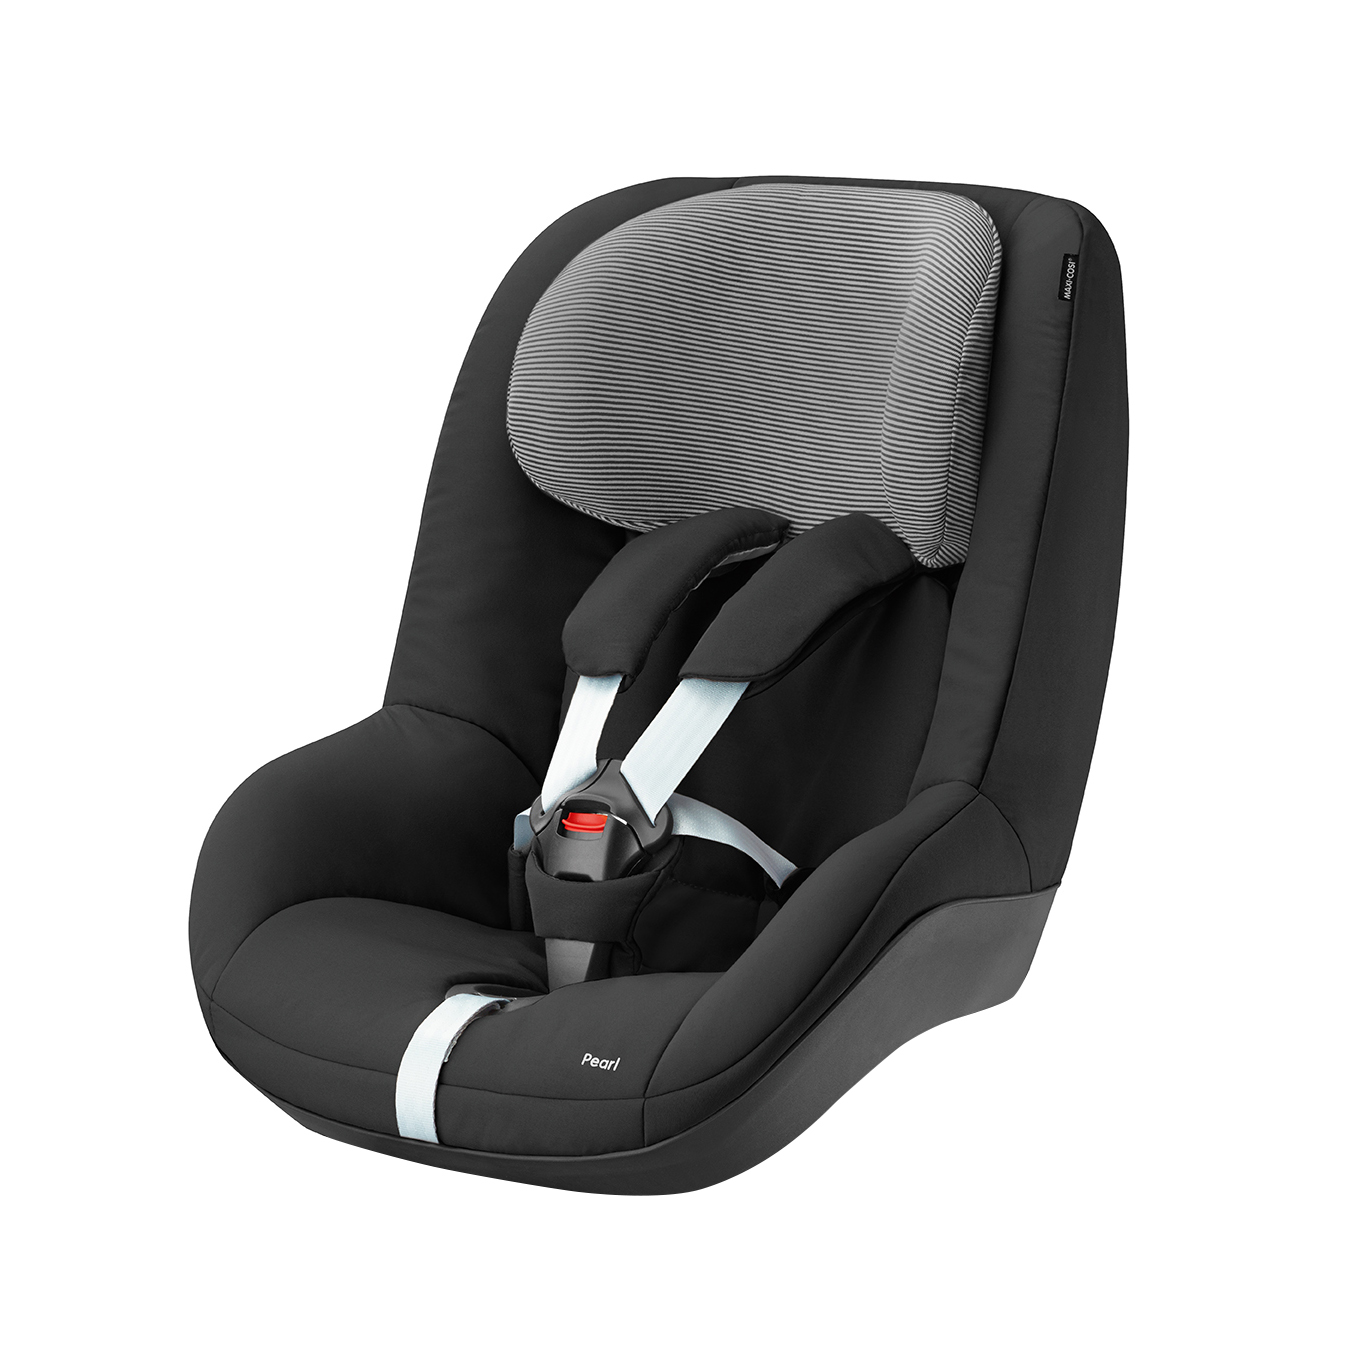 Maxi cosi child car seat pearl 2017 black raven buy at for Maxi cosi housse